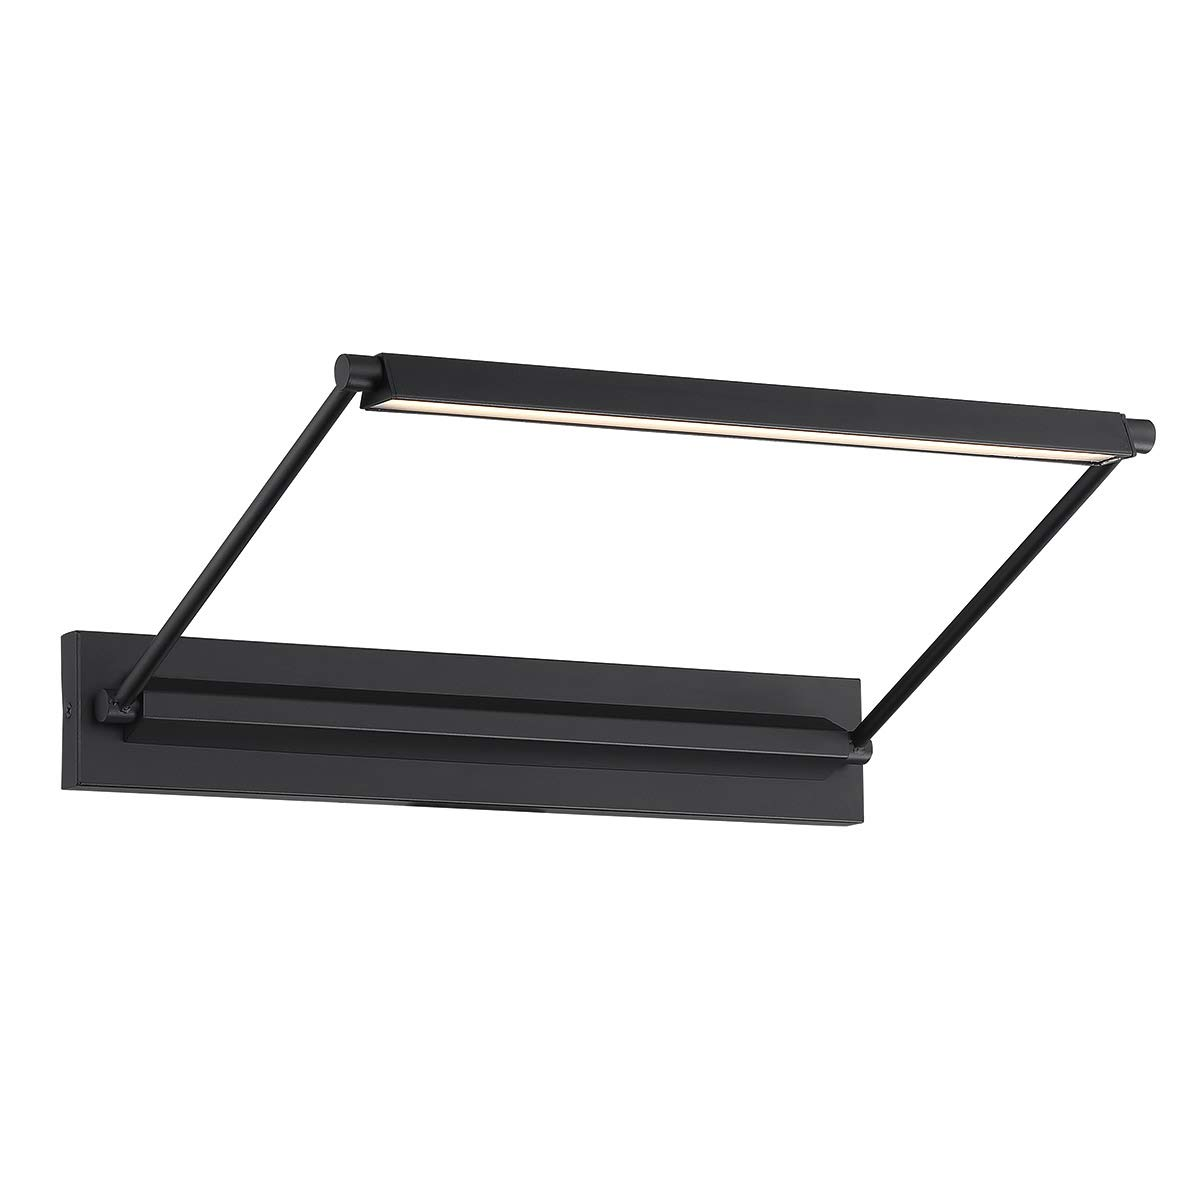 WAC Lighting PL-LED17-30-BK DweLED Hudson 17in LED Picture 3000K in Black Light Fixture, 17 Inches,